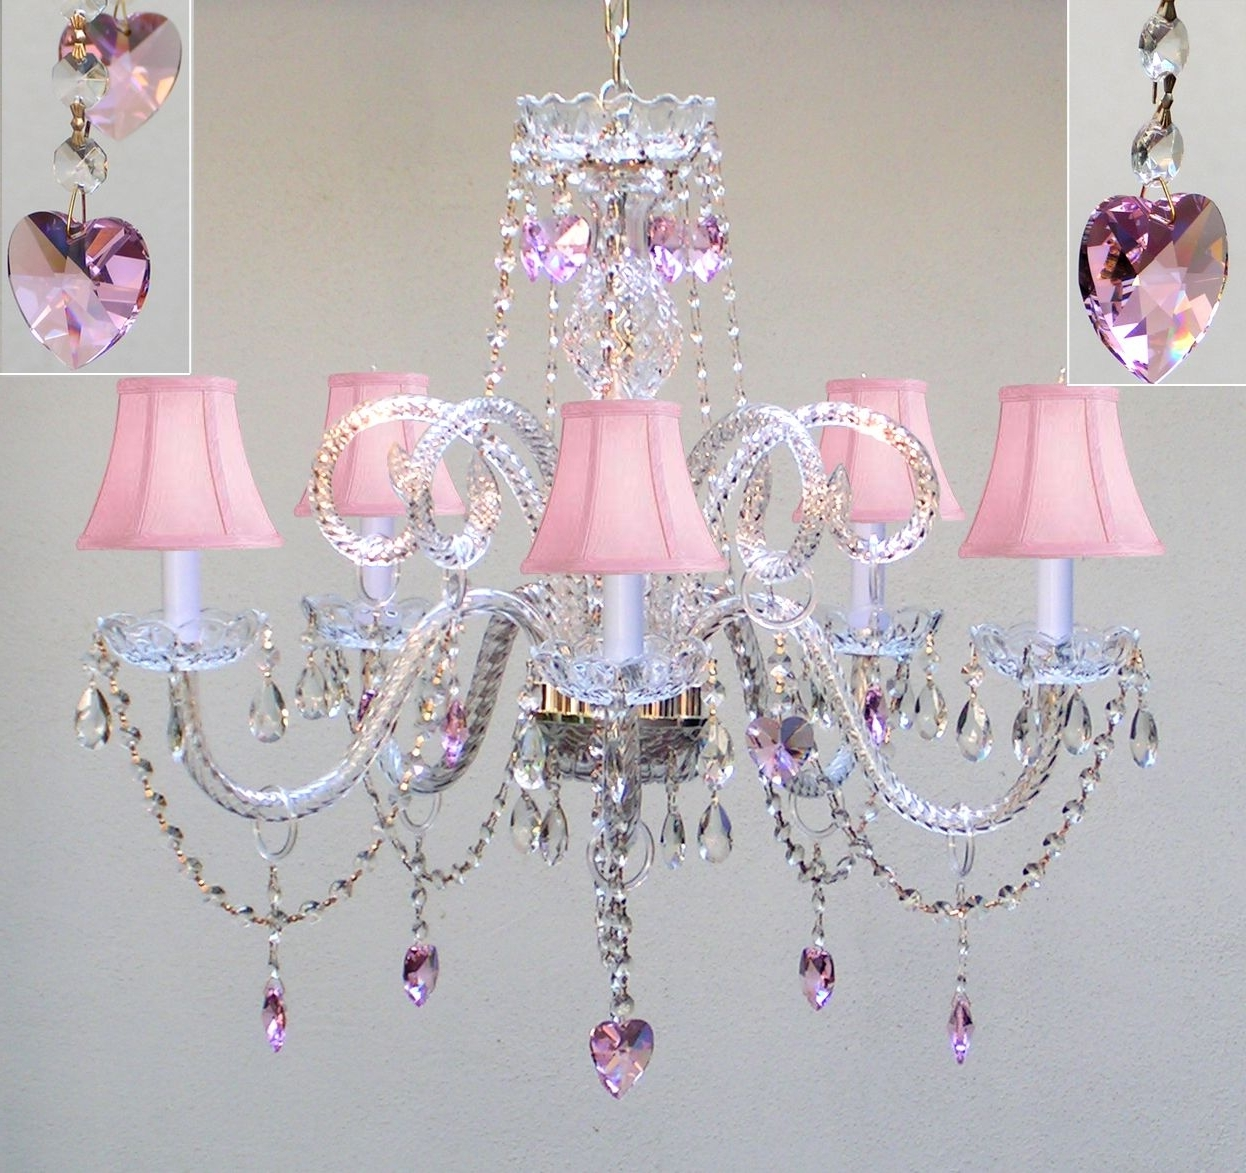 Fashionable For A Little Girls Room! A46 Sc/387/5/pinkhearts Chandeliers Inside Purple Crystal Chandelier Lighting (View 14 of 20)